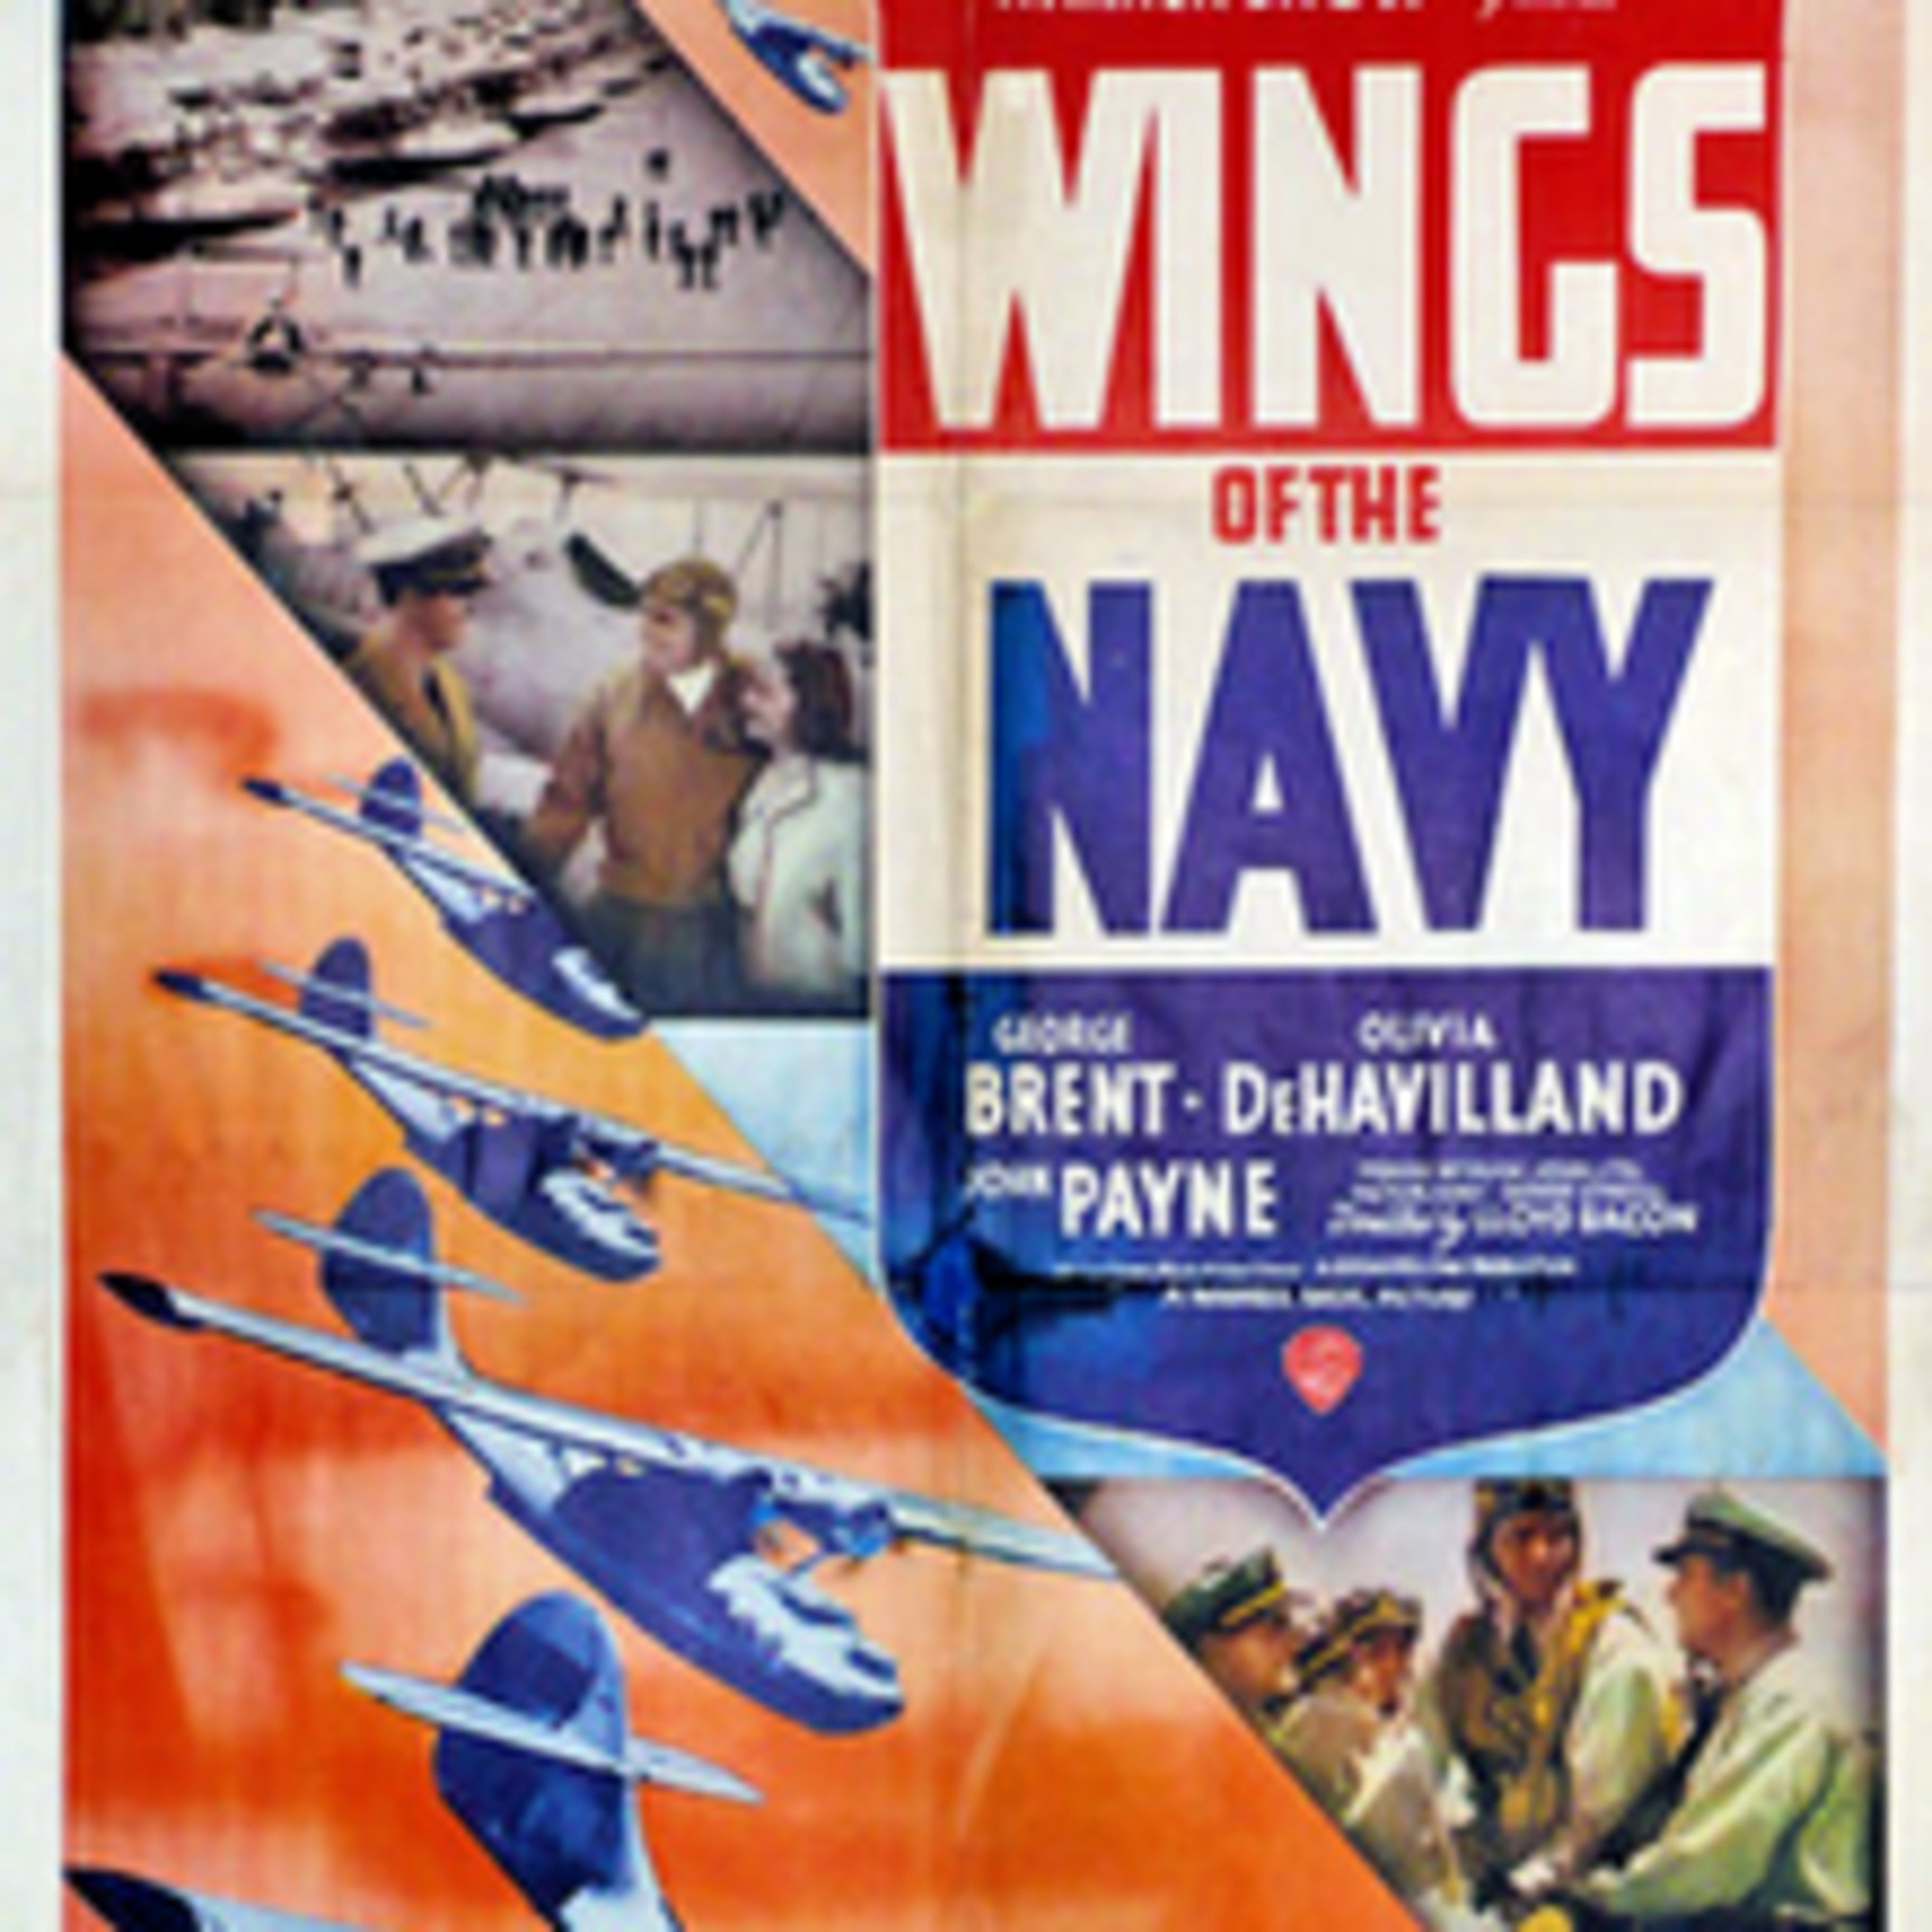 Wings of the Navy - Starring George Brent & Olivia DeHaviland - All-Star Radio Productions of Classic Films - Lux Radio Theater